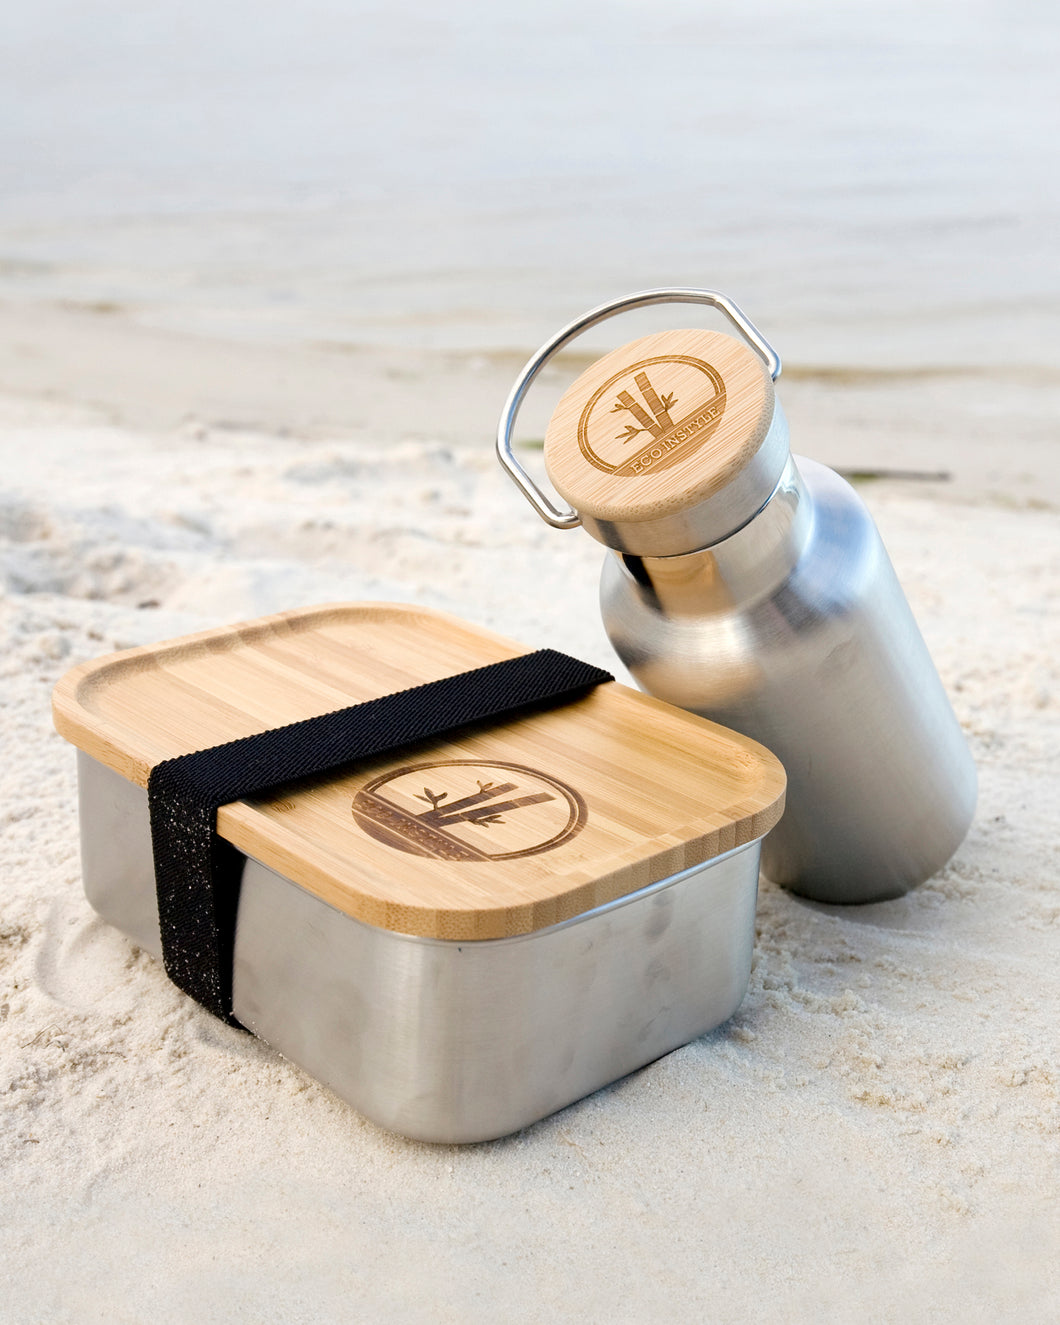 STAINLESS STEEL LUNCH BOX WITH BAMBOO LID